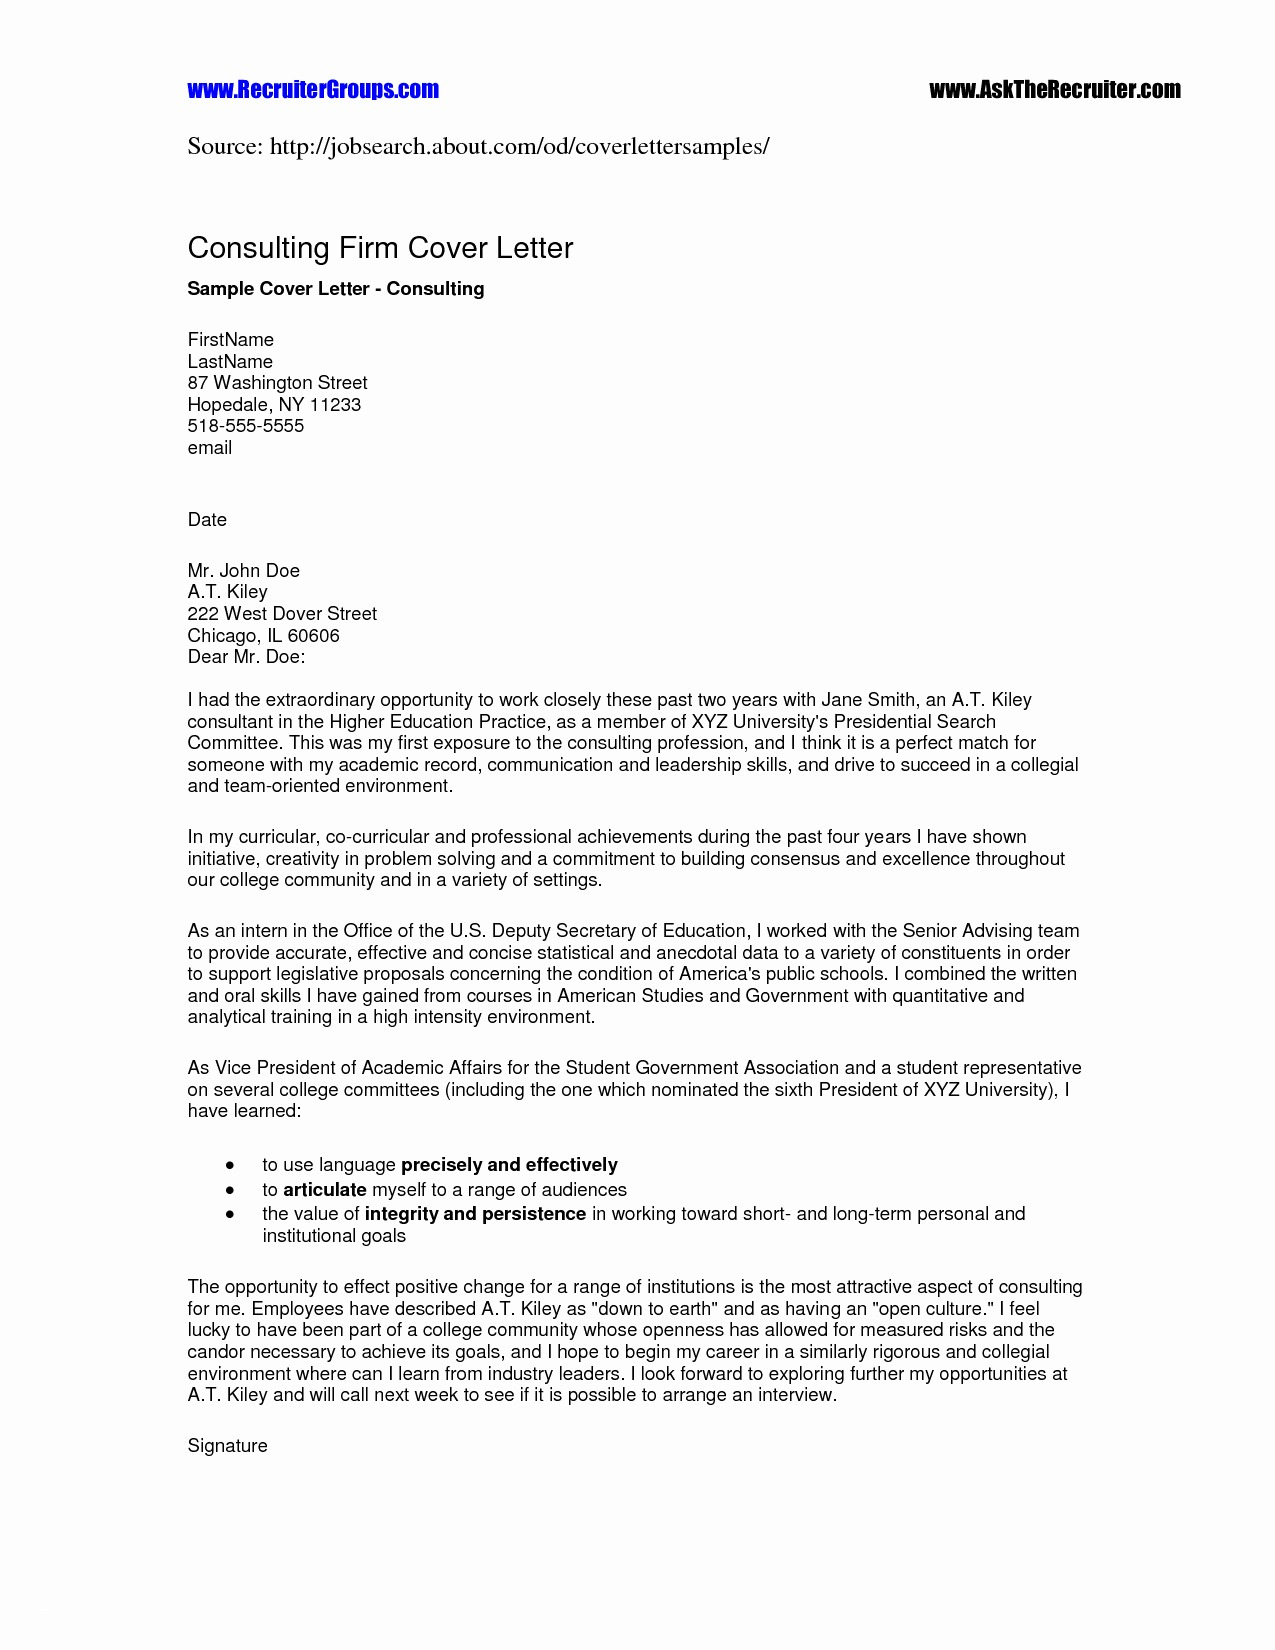 cover letter template mac example-Resume Templates Mac Free Best Word Document Resume Template Unique Cover Letter Examples Word 9-d